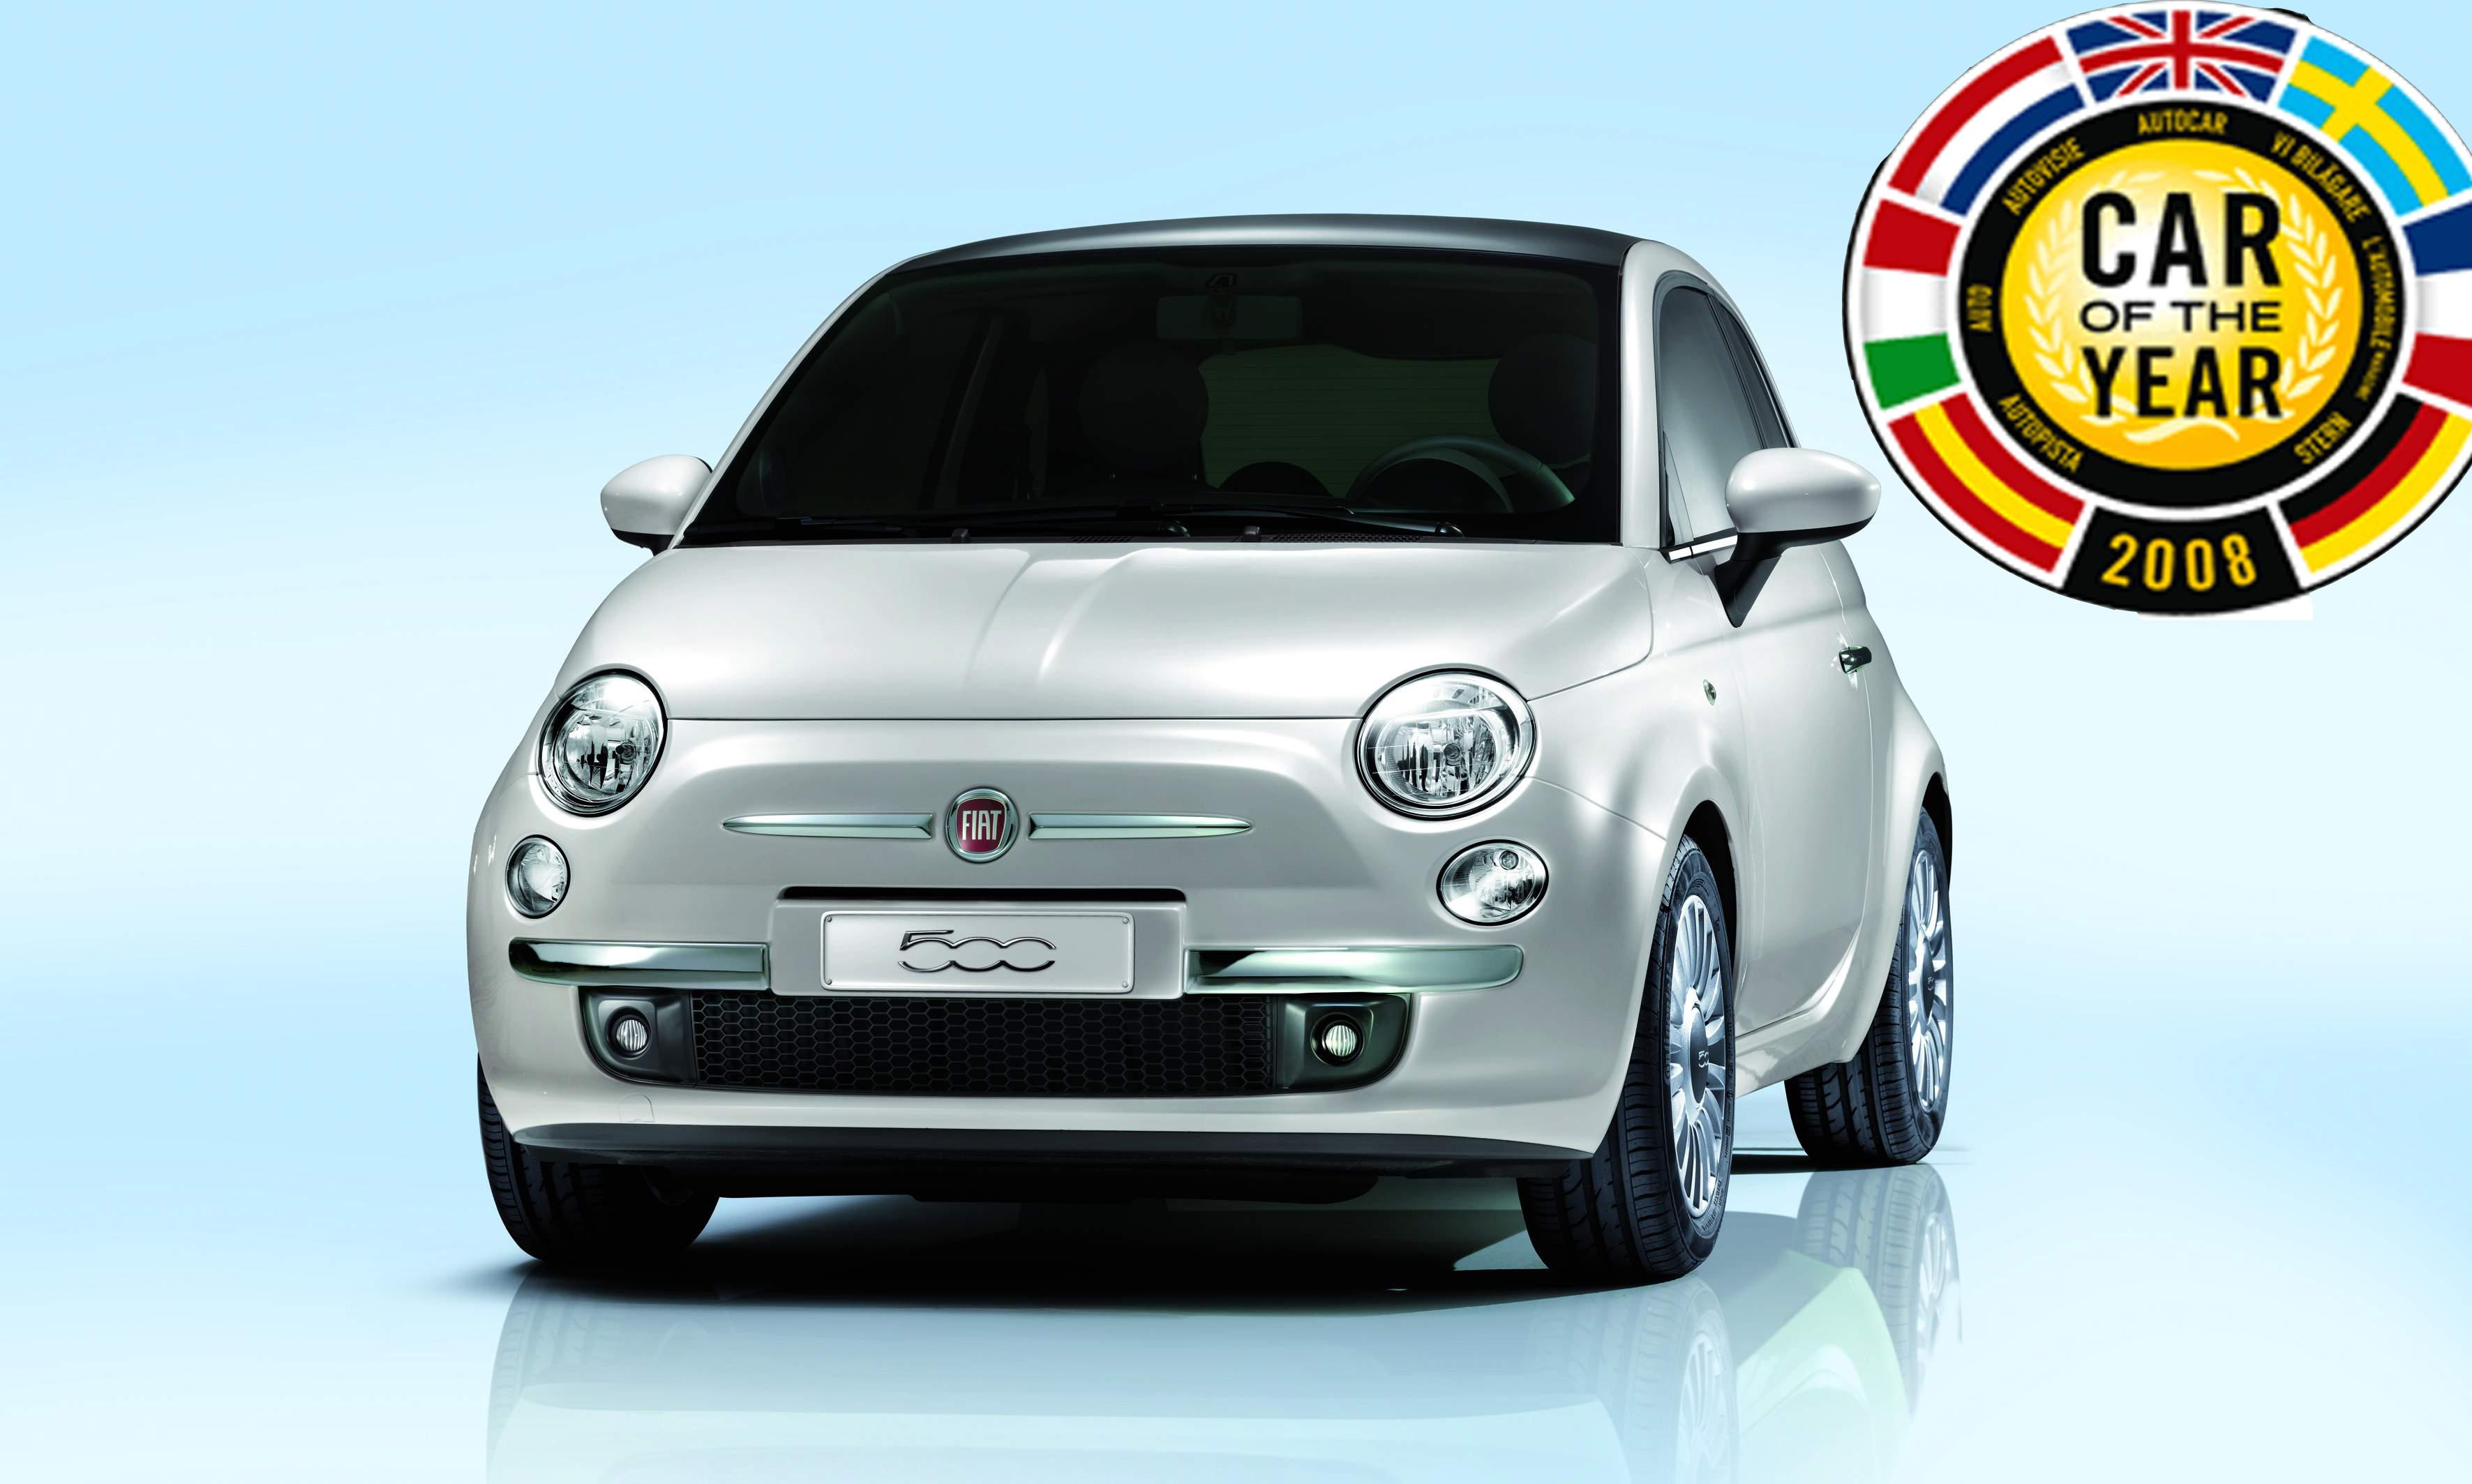 Fiat 500 2008 European Car Of The Year Top Speed